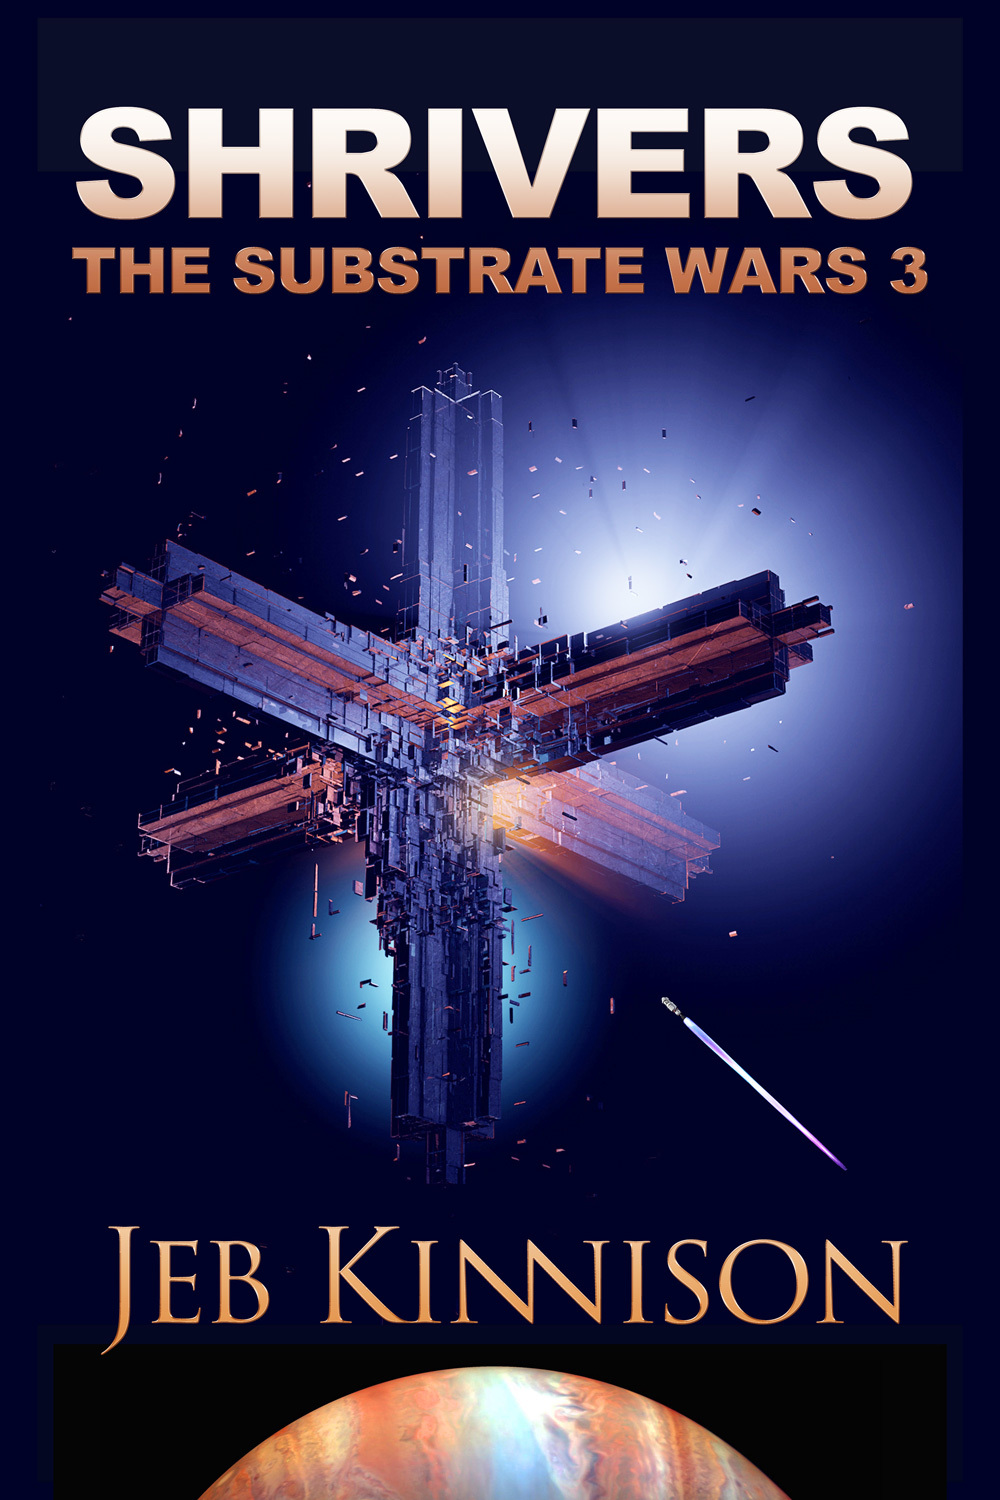 Shrivers (The Substrate Wars 3) Jeb Kinnison